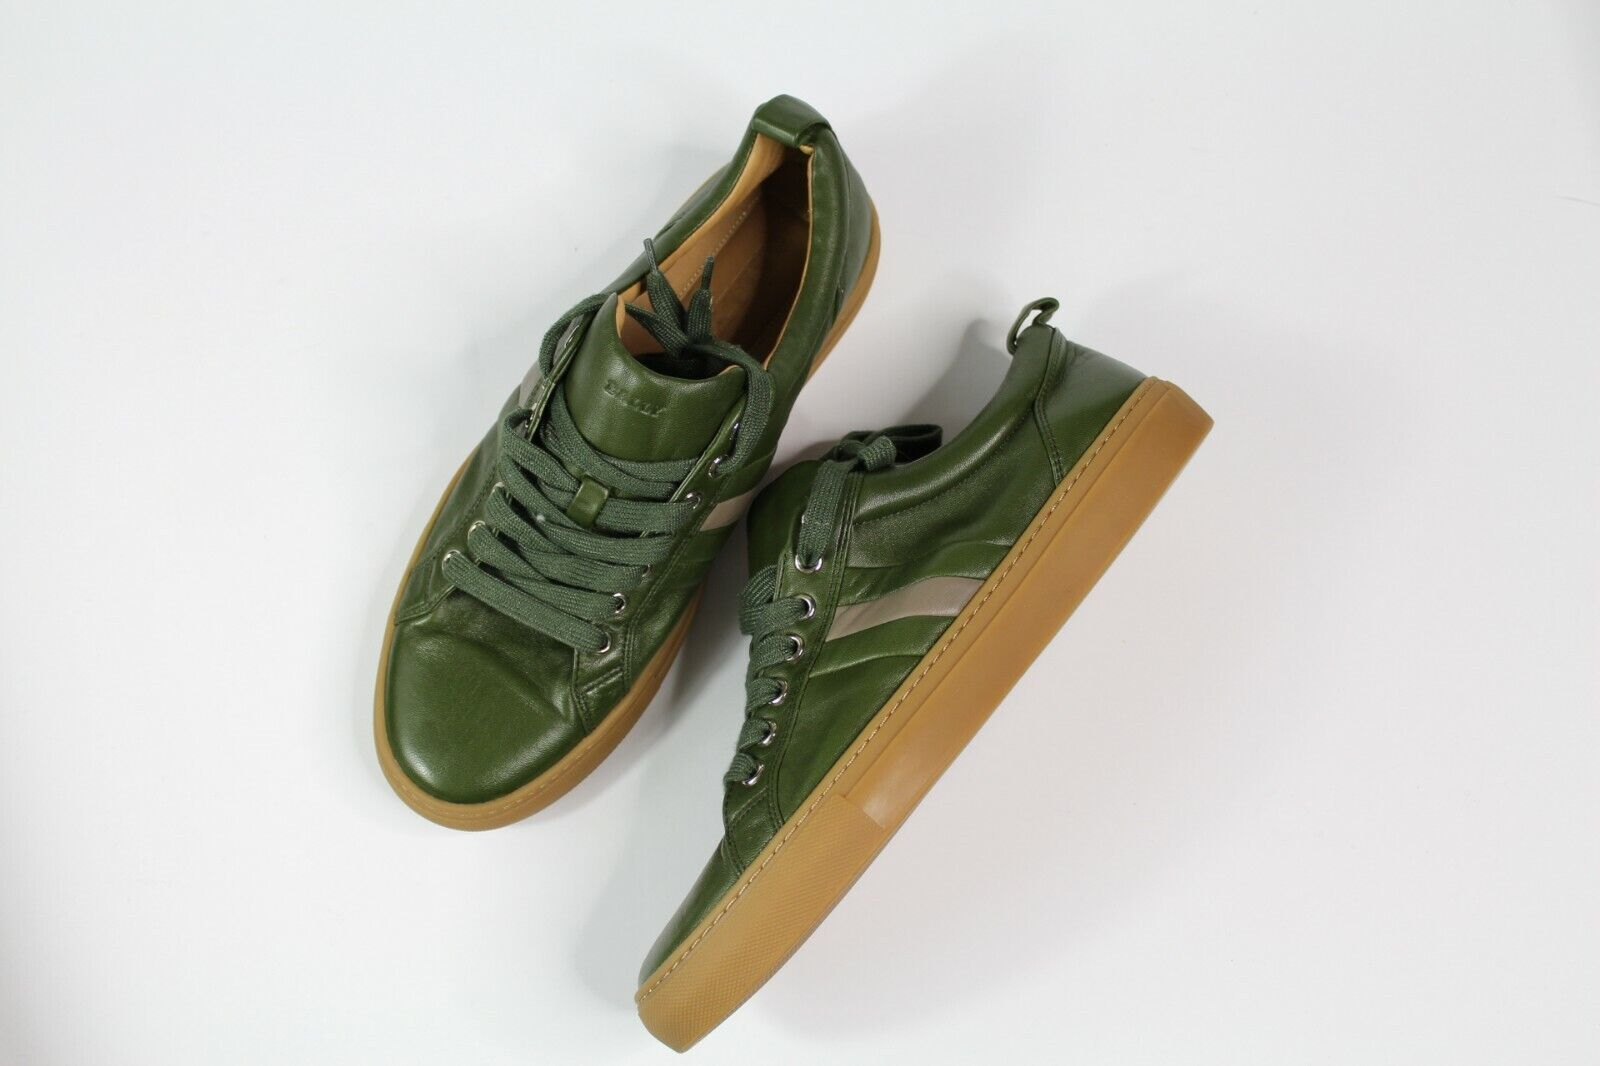 f325a7e3c57287 Authentic Bally Hendris Leather Sneakers Olive Green Men s Stripe Low Sz  9.5. AIR JORDAN 6 RETRO ...